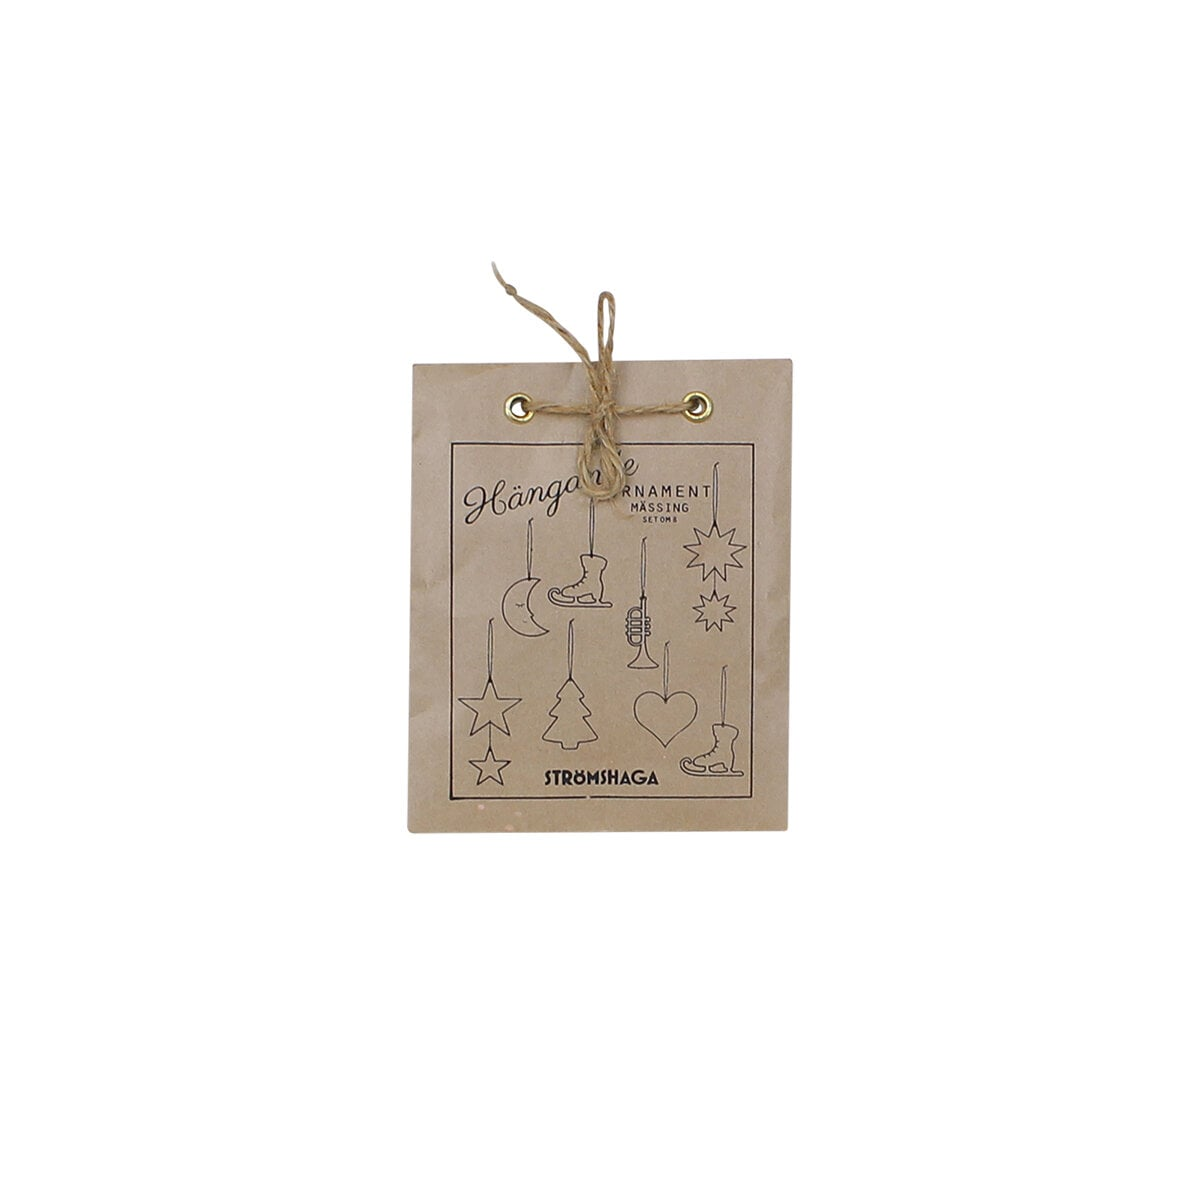 Hanging Ornament S/8 Brass